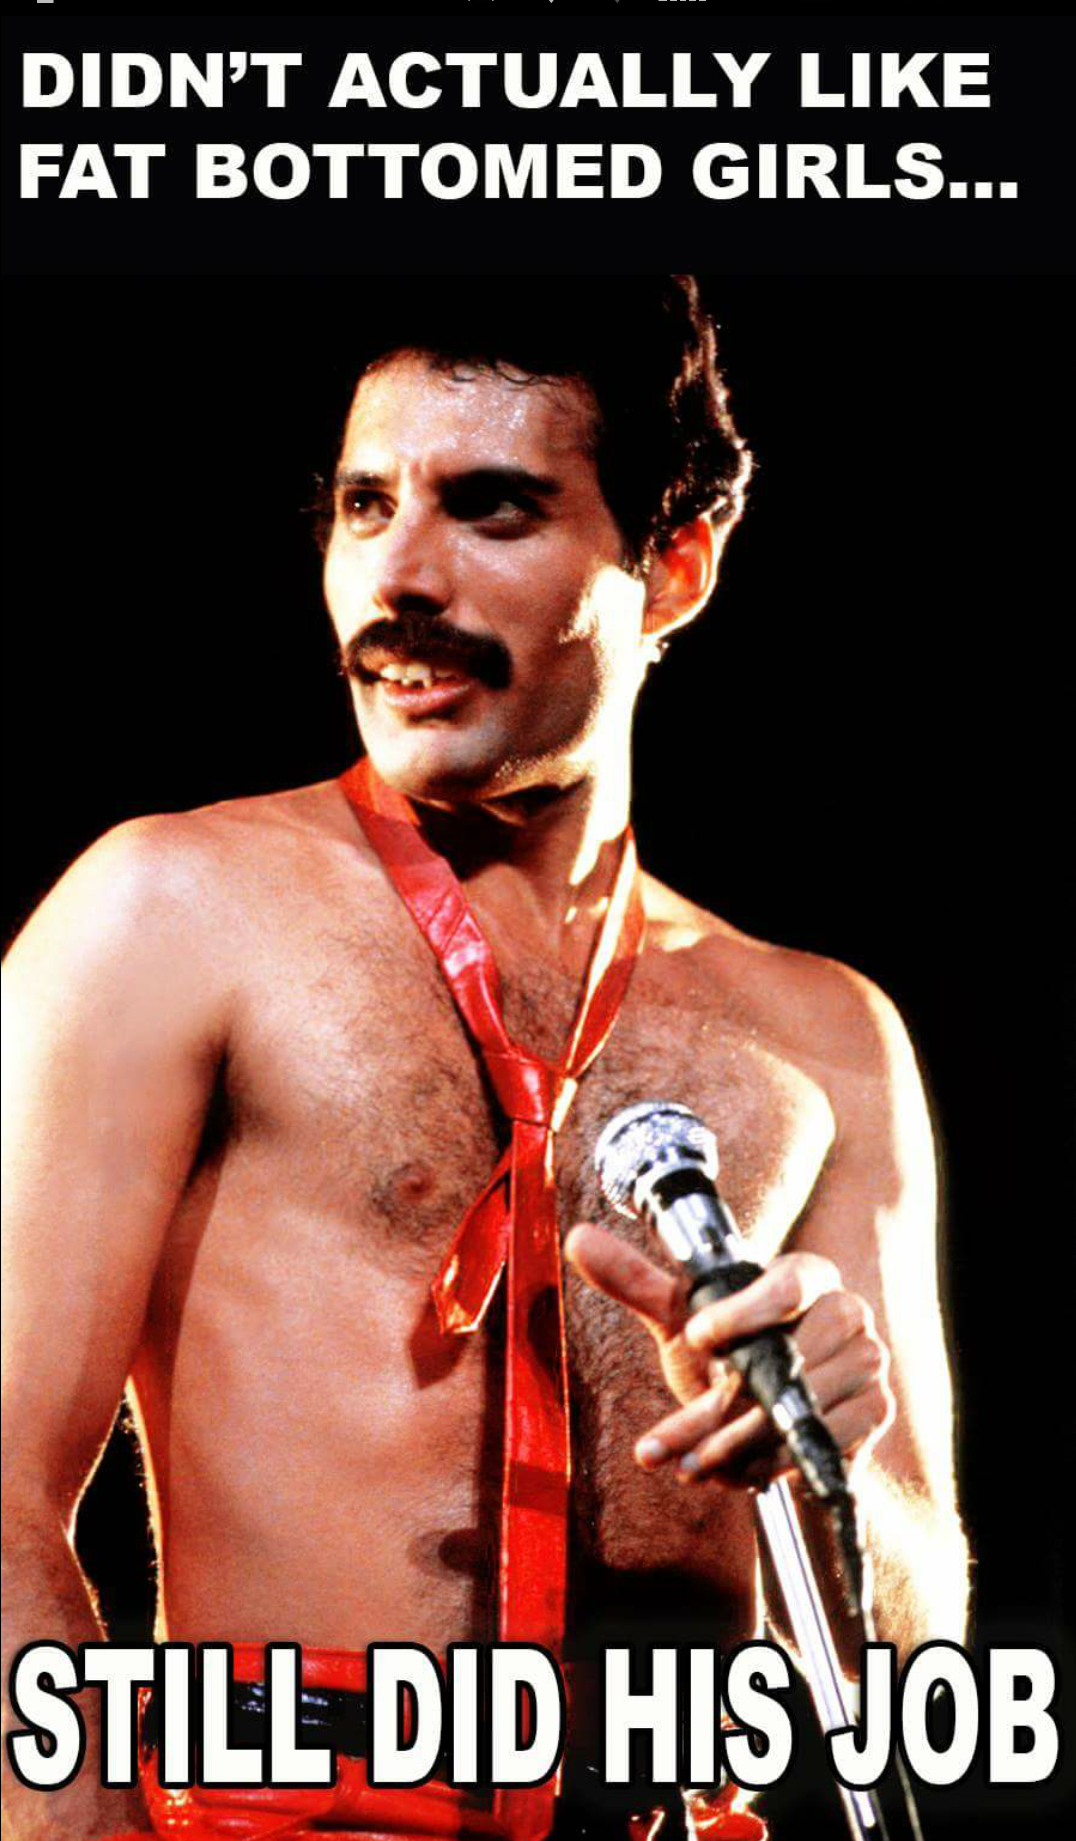 freddie mercury did not like fat bottomed girls - Google Search